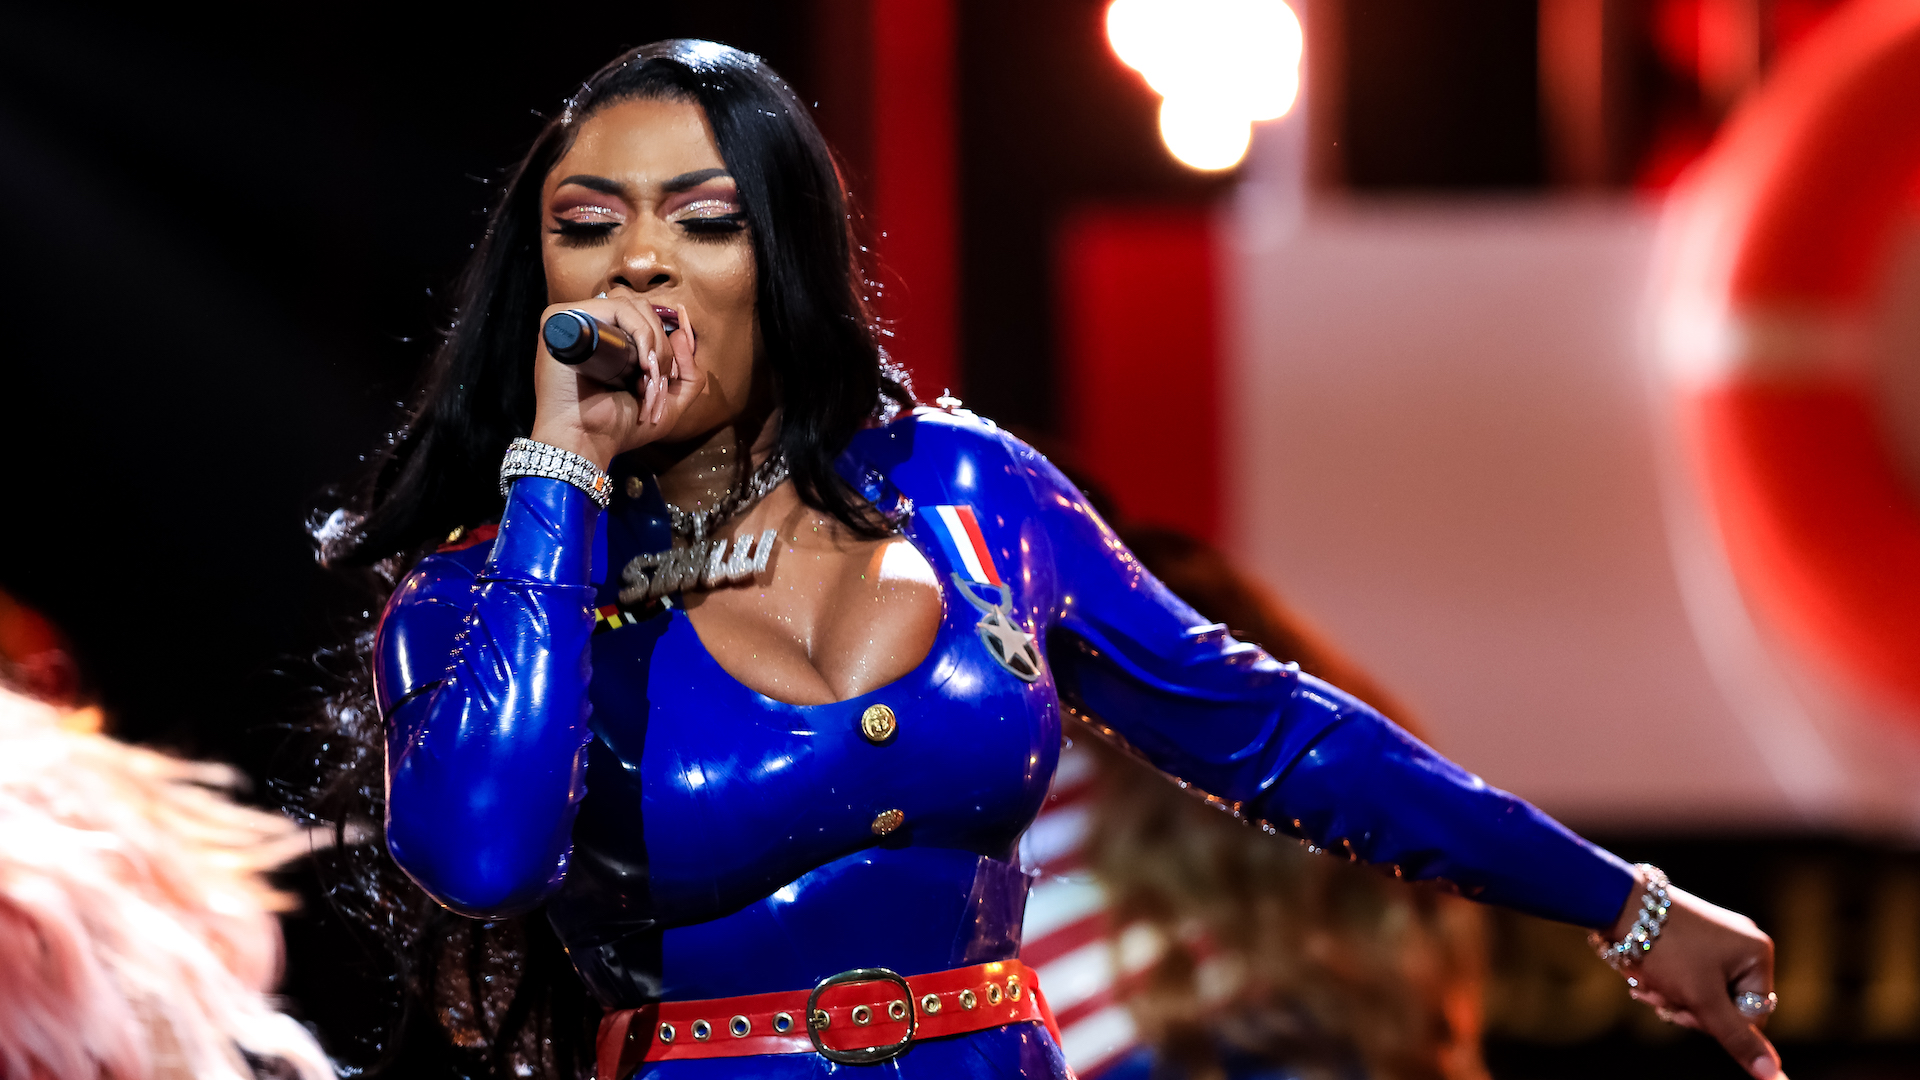 Megan Thee Stallion's Ex-Friend Kelsey Nicole Responds To 'Shots Fired' Diss: 'I Would Never Want a Soul Like Hers'